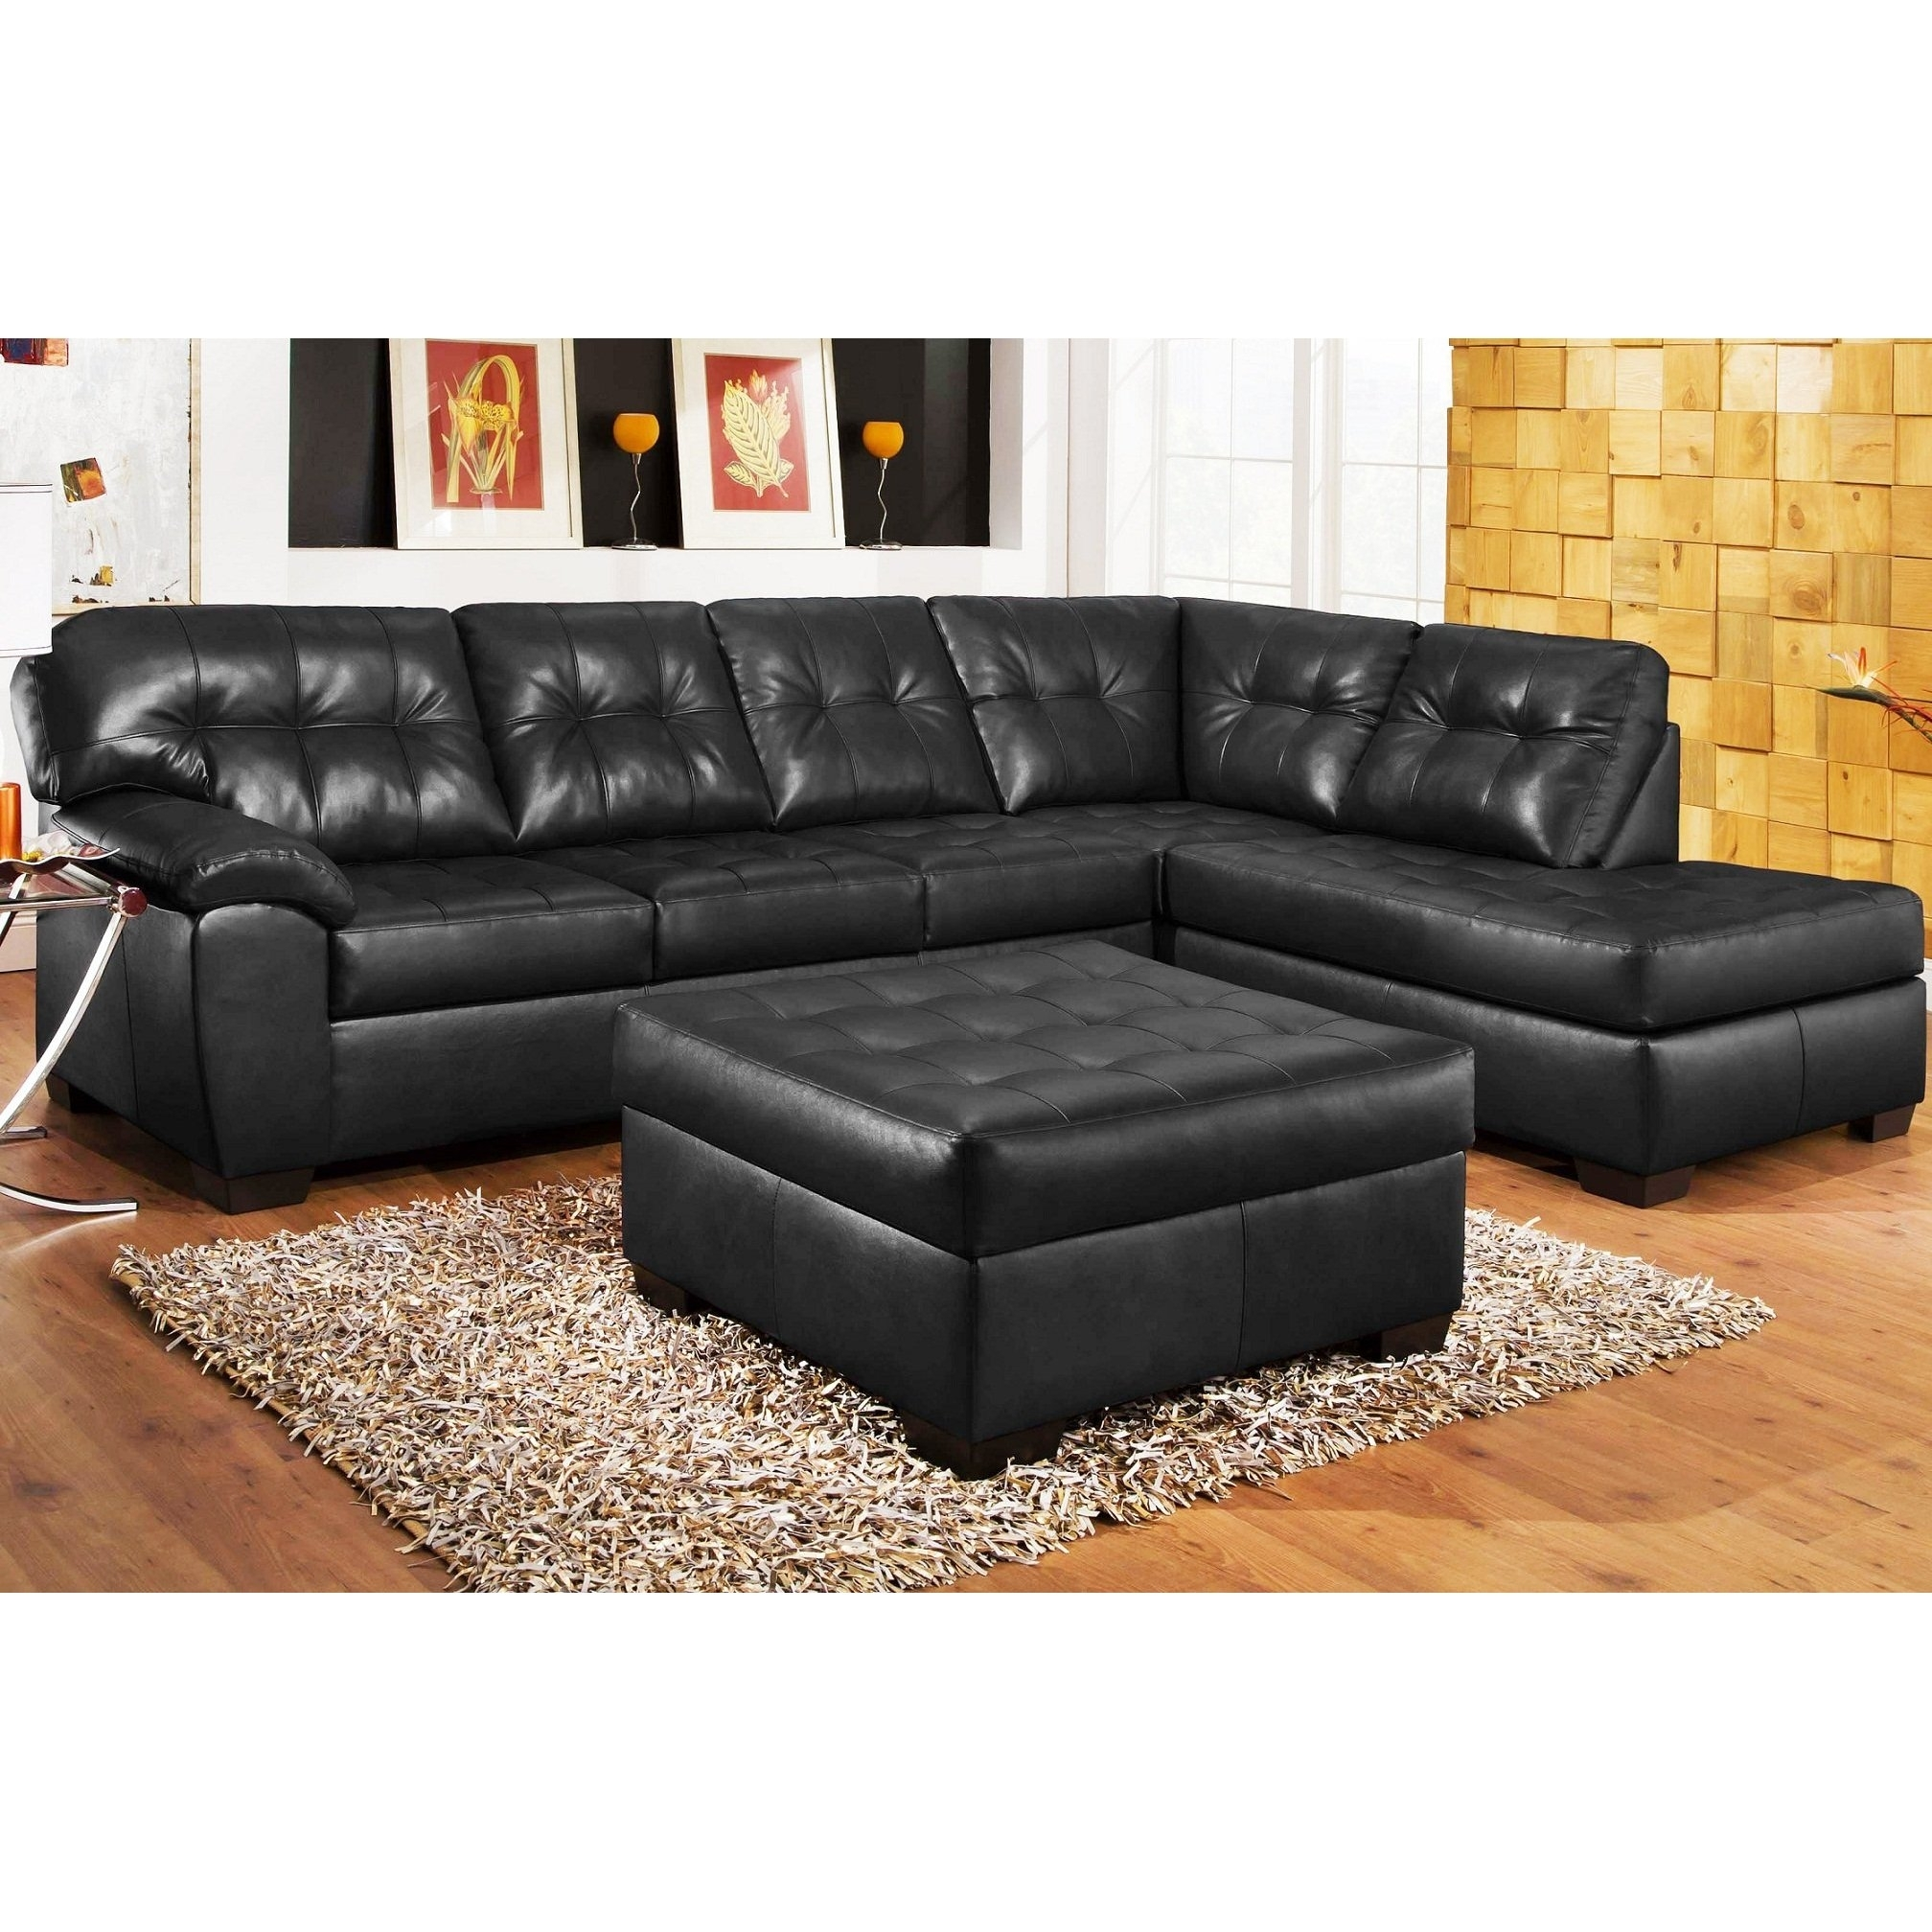 3Pc Black Leather Sectional Sofa , Chaise , Ottoman Set | Create The throughout Black Leather Sectionals With Ottoman (Image 1 of 15)